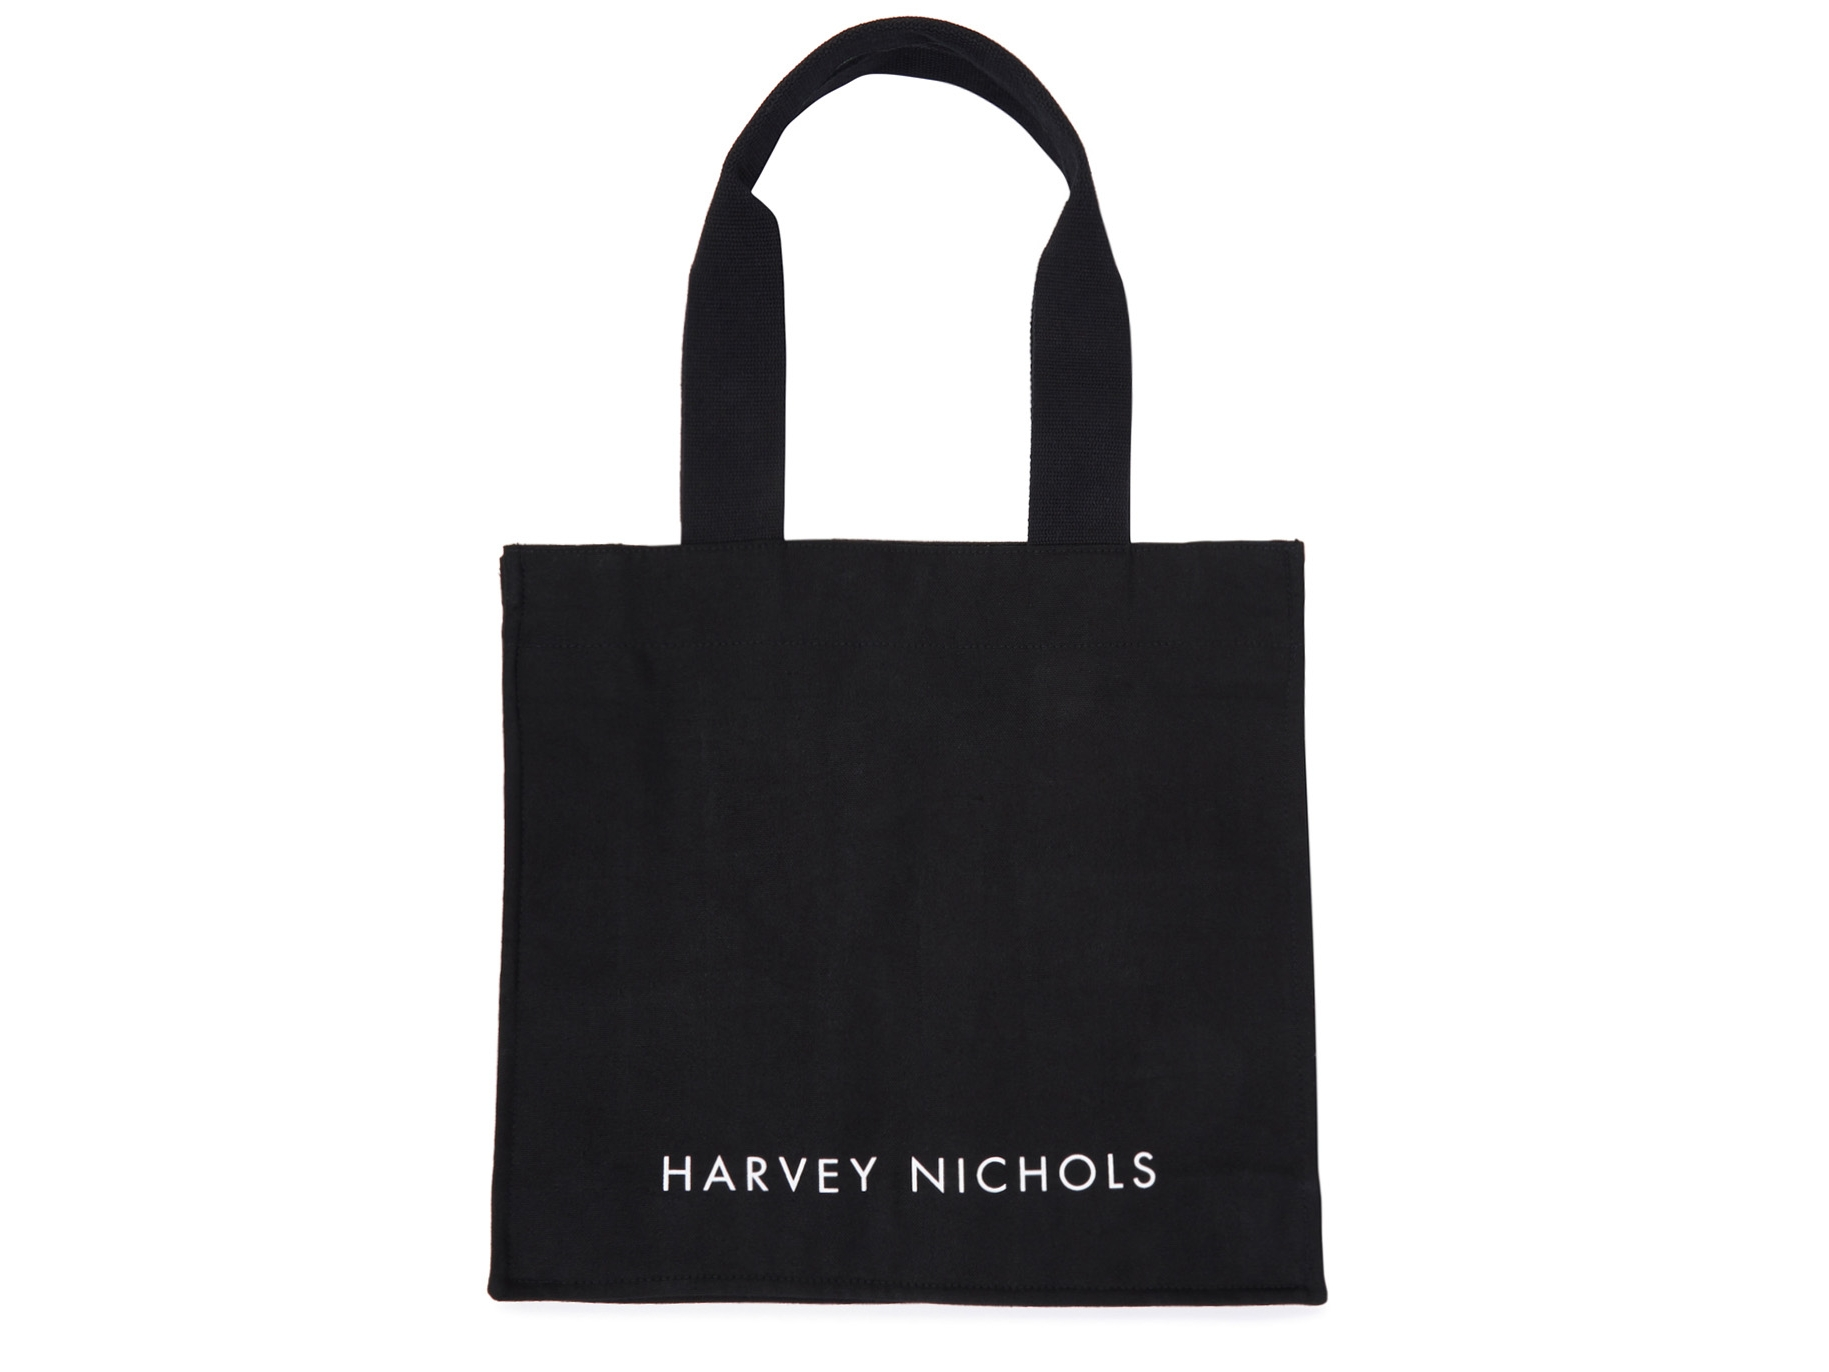 e03120bb949b Harvey Nichols Black Canvas Tote Bag